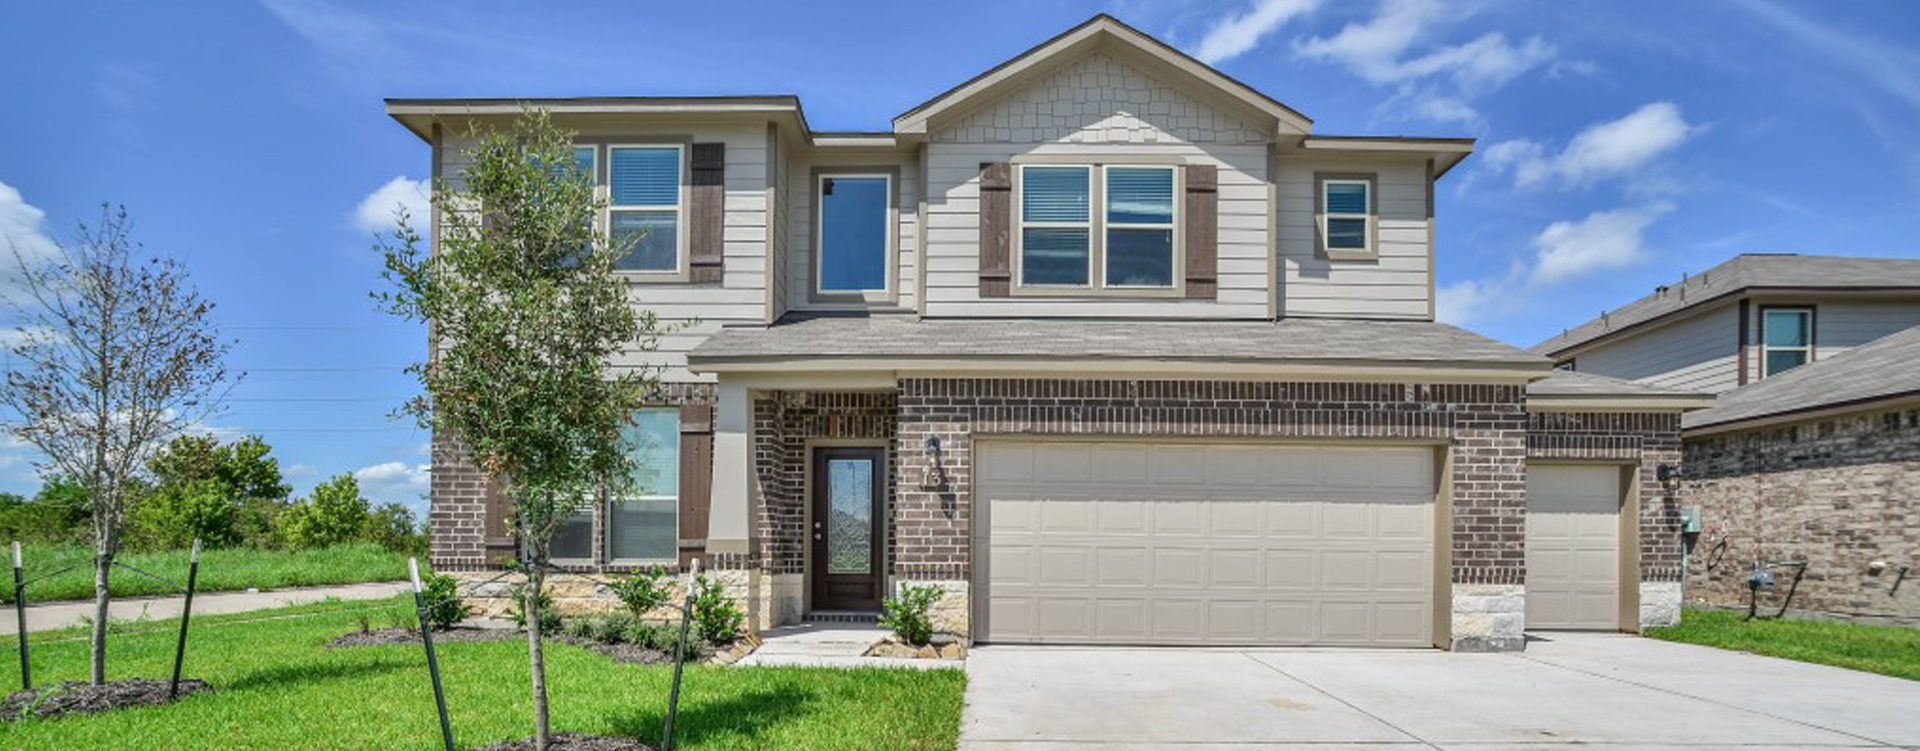 Manvel new homes for sale at Rodeo Palms